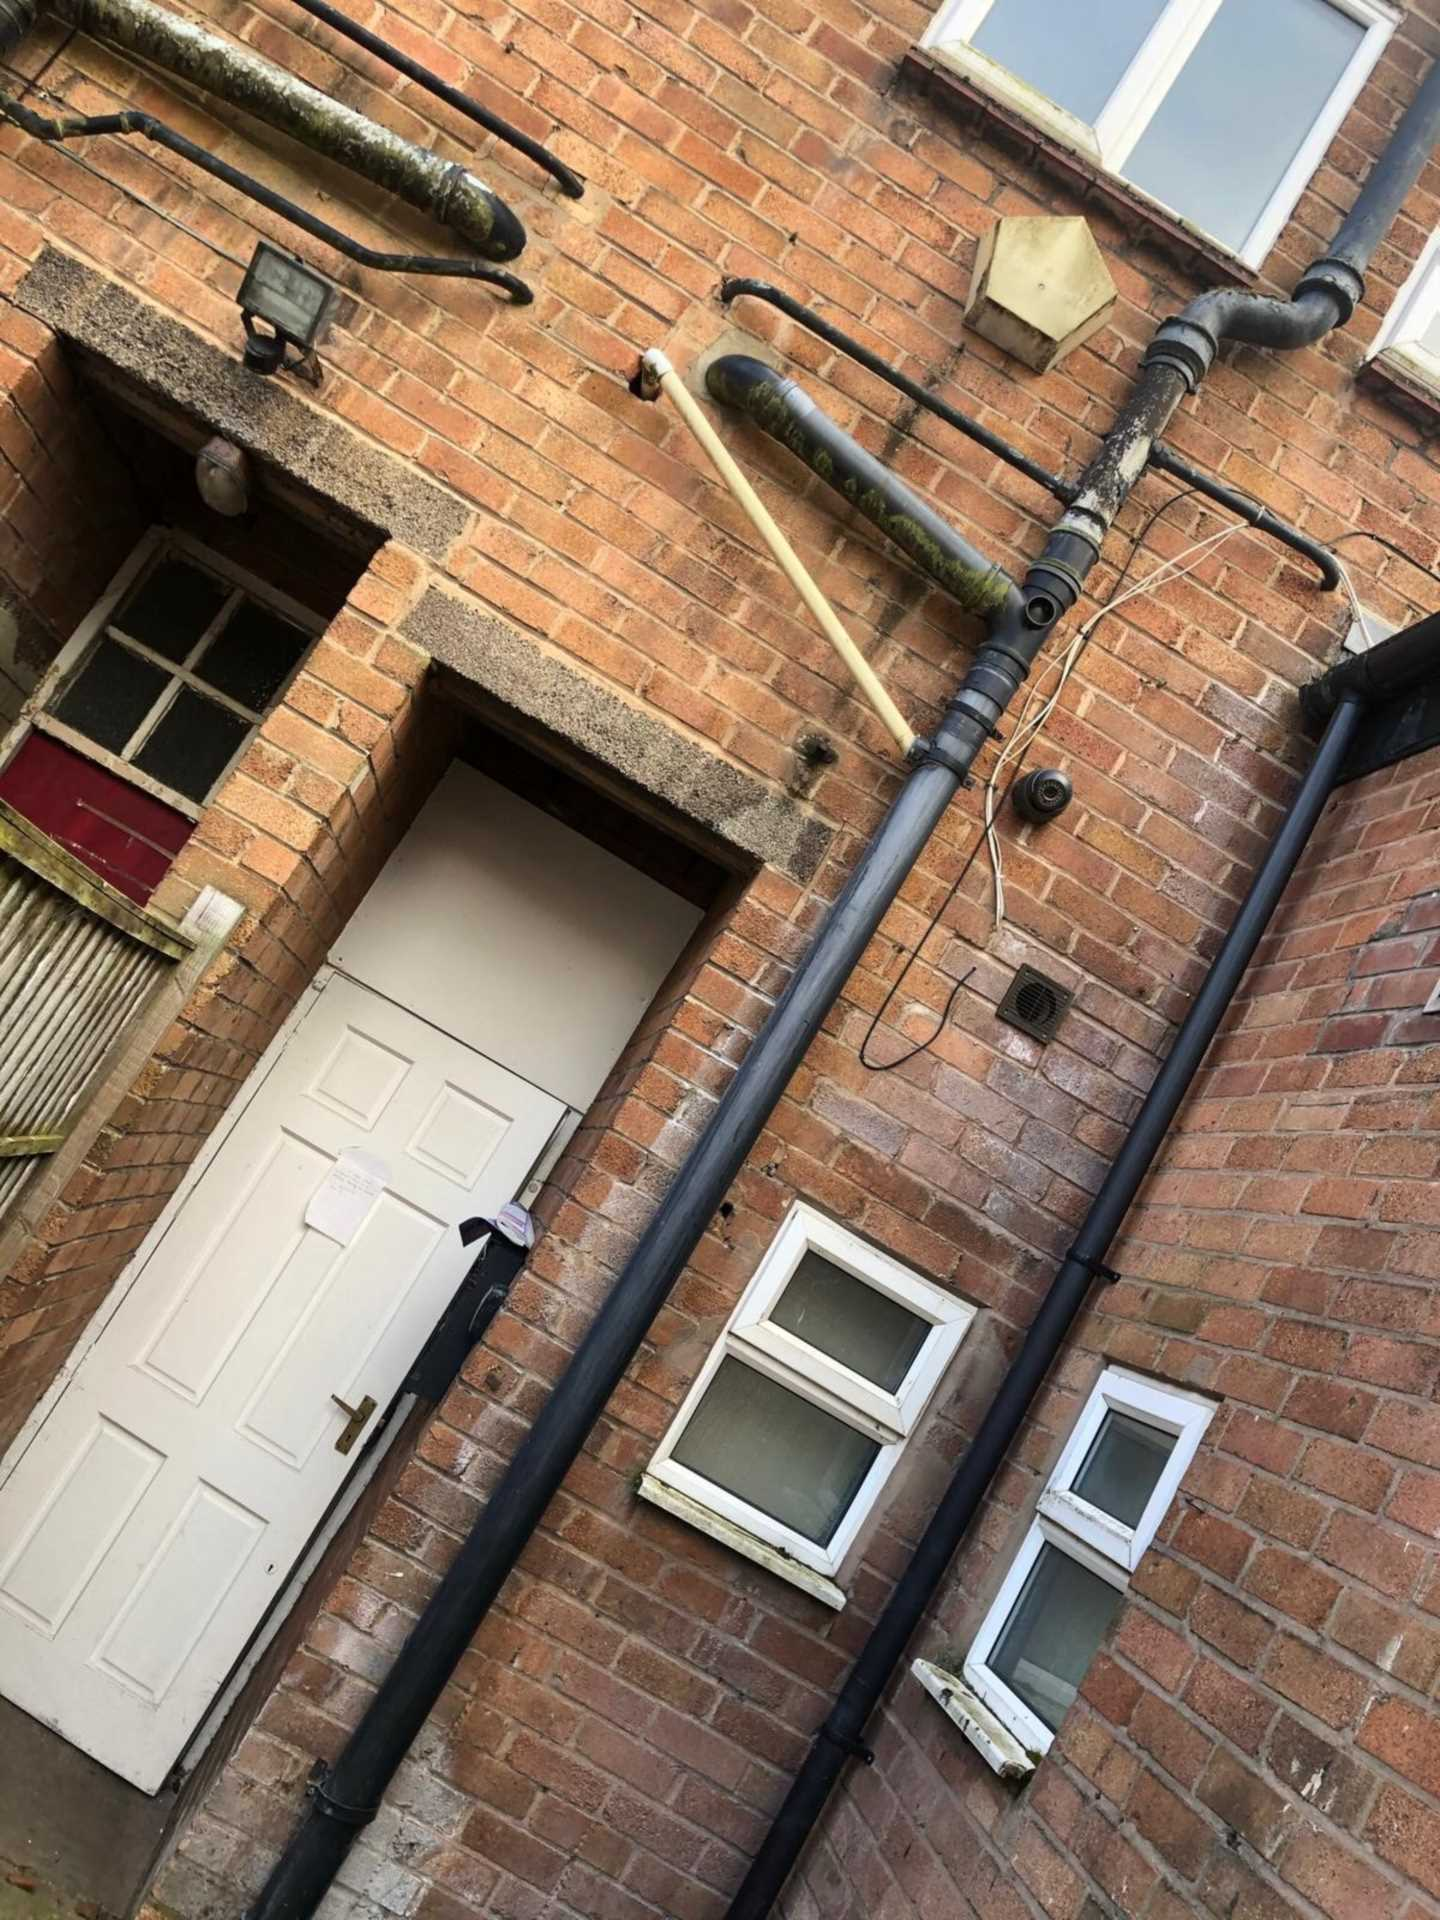 171 Daventry Road, Coventry CV3 5HF, Image 2